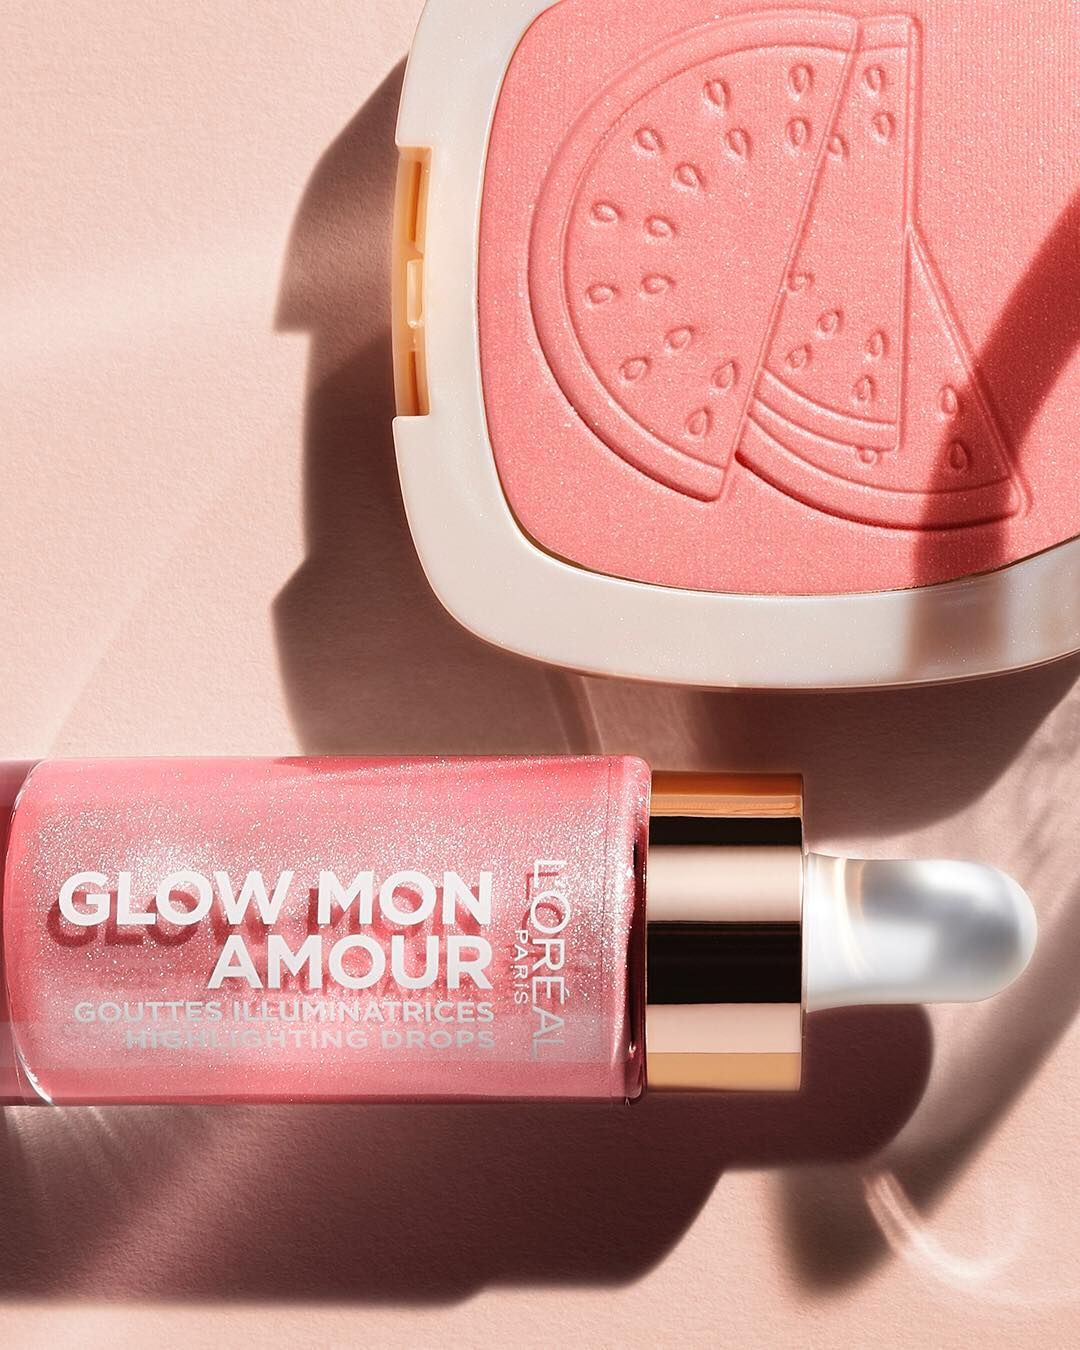 L Oreal Paris Makeup On Instagram We Need You To Choose Our New Glow Mon Amour Blush Color Meet Us Here At 5pm A Loreal Loreal Paris Loreal Paris Makeup